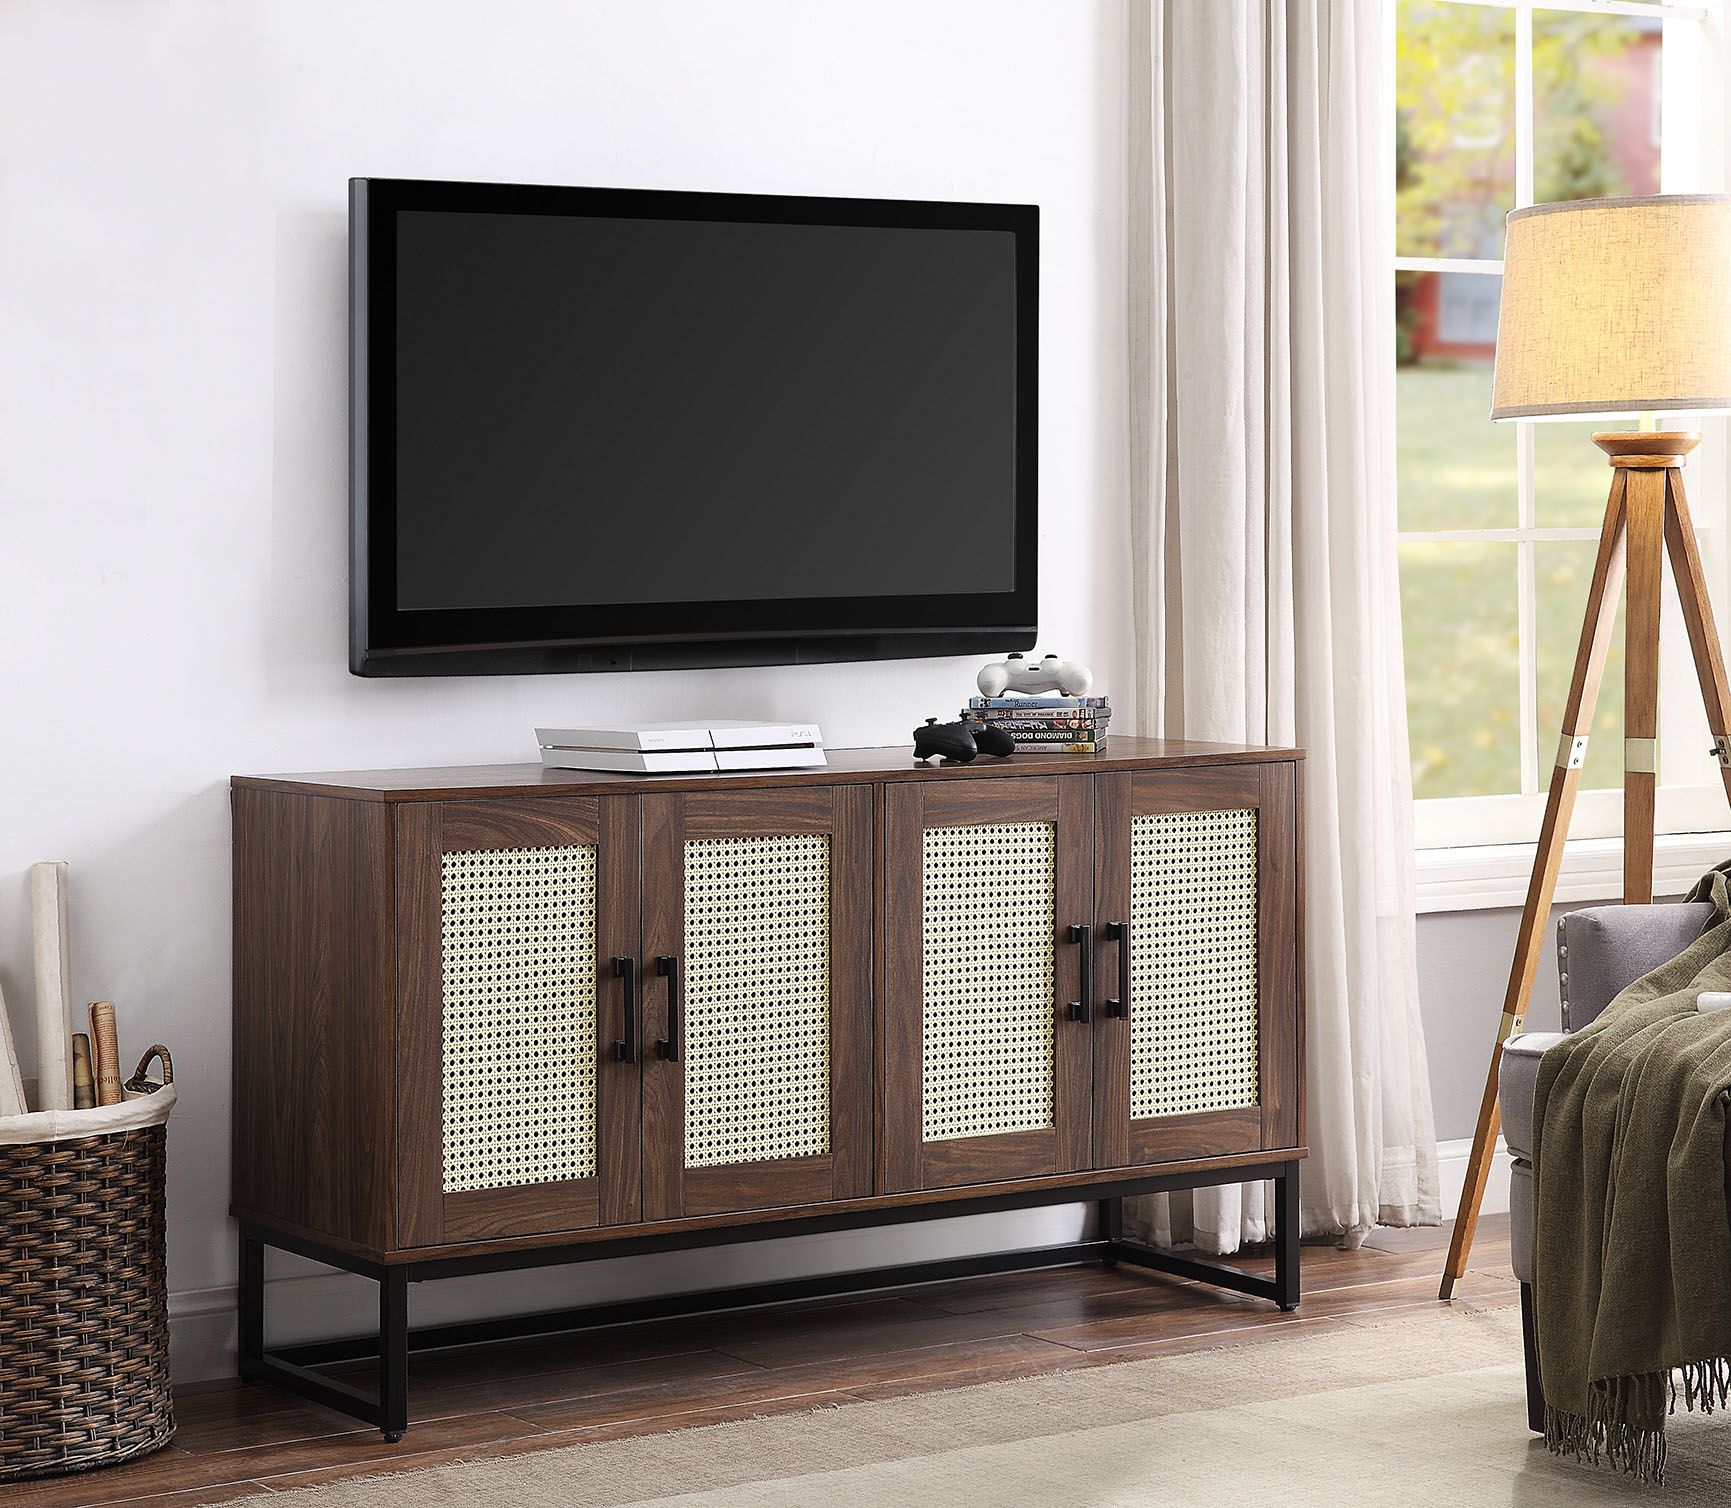 d08a6efe53aa34b0eb78b3aa52edecac - Better Homes And Gardens 3 In 1 Tv Stand Instructions